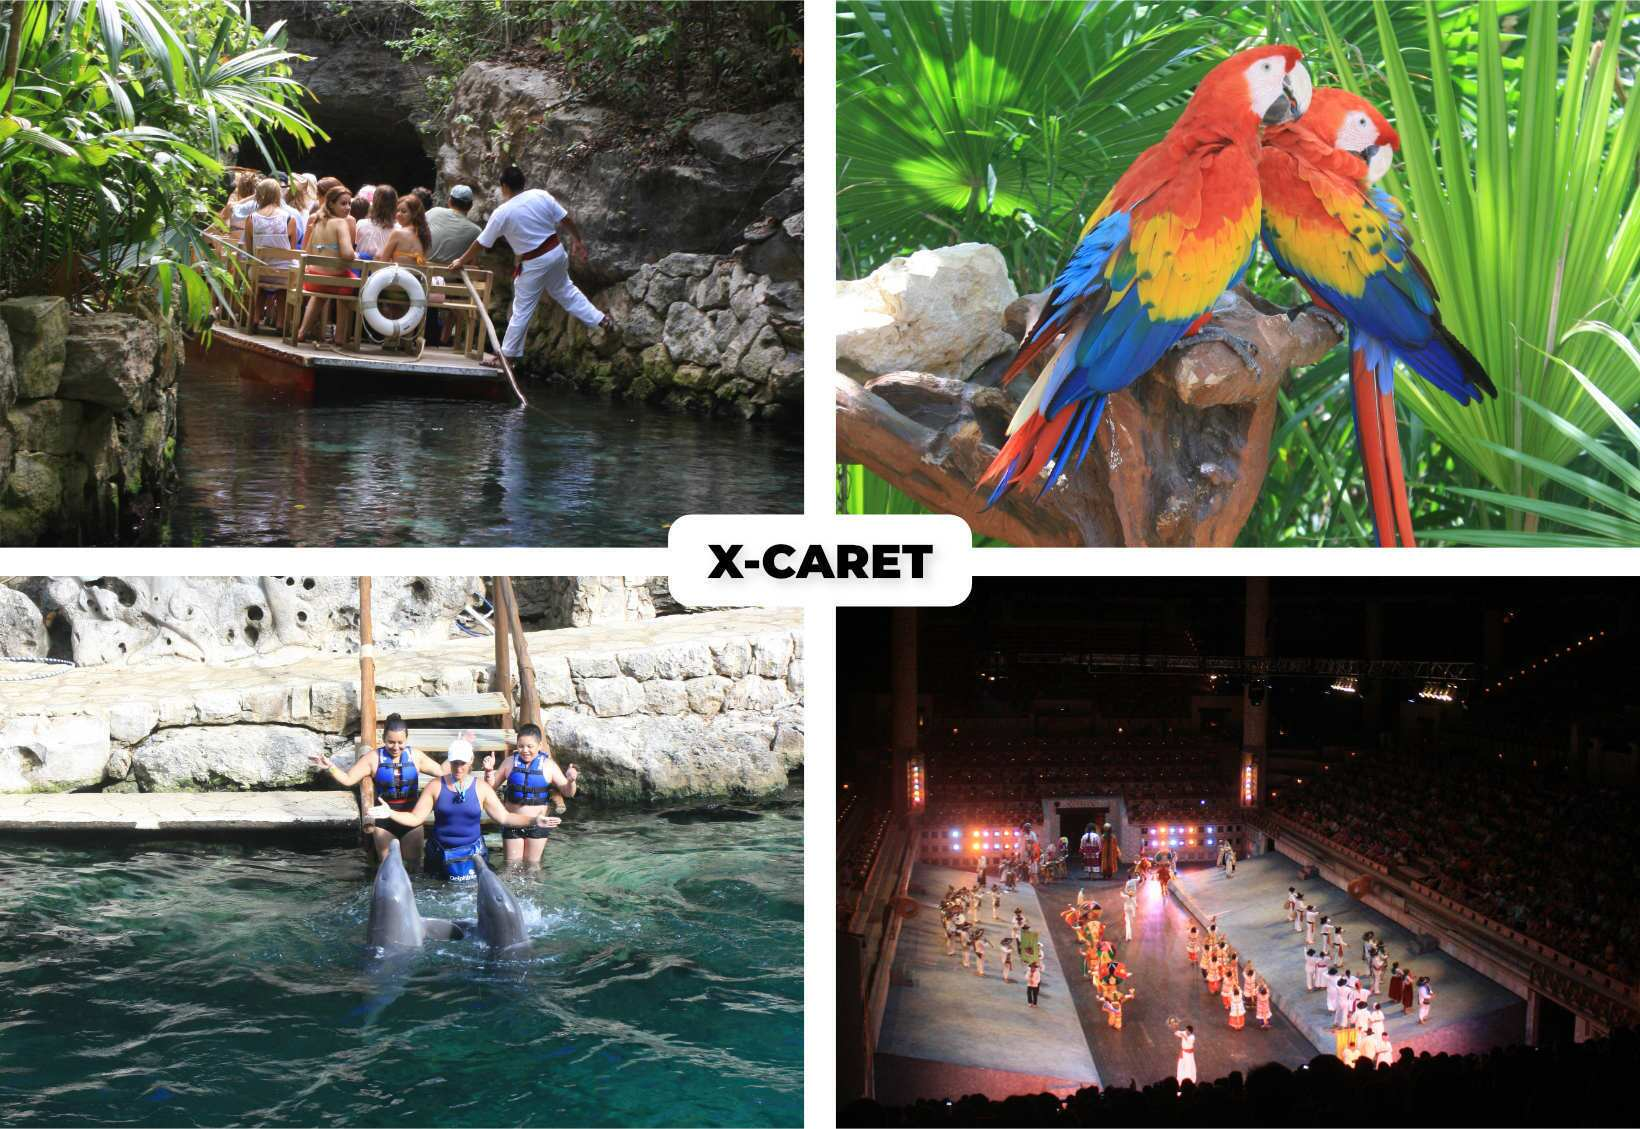 cancun parques x-caret